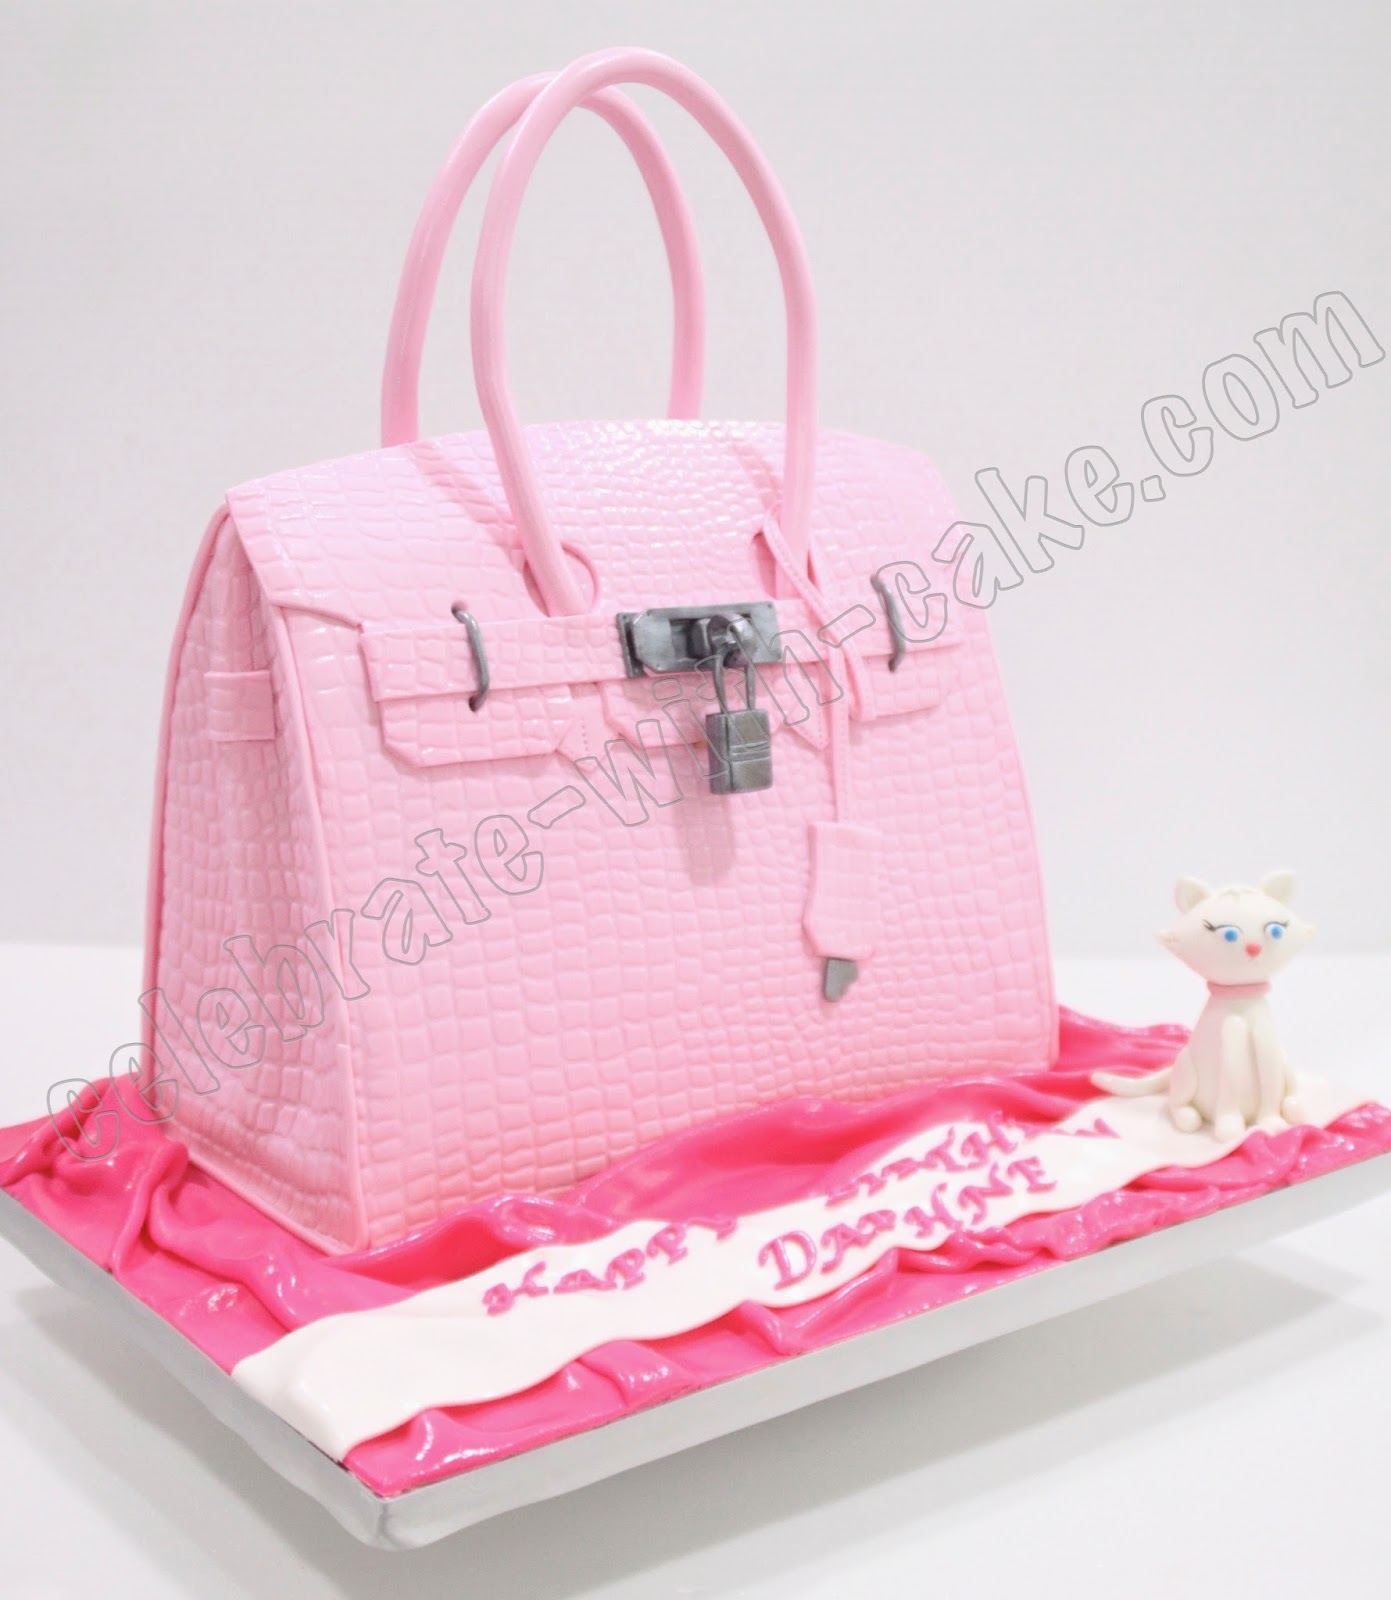 grey birkin bag - Celebrate with Cake!: Pink Hermes Birkin Bag Cake